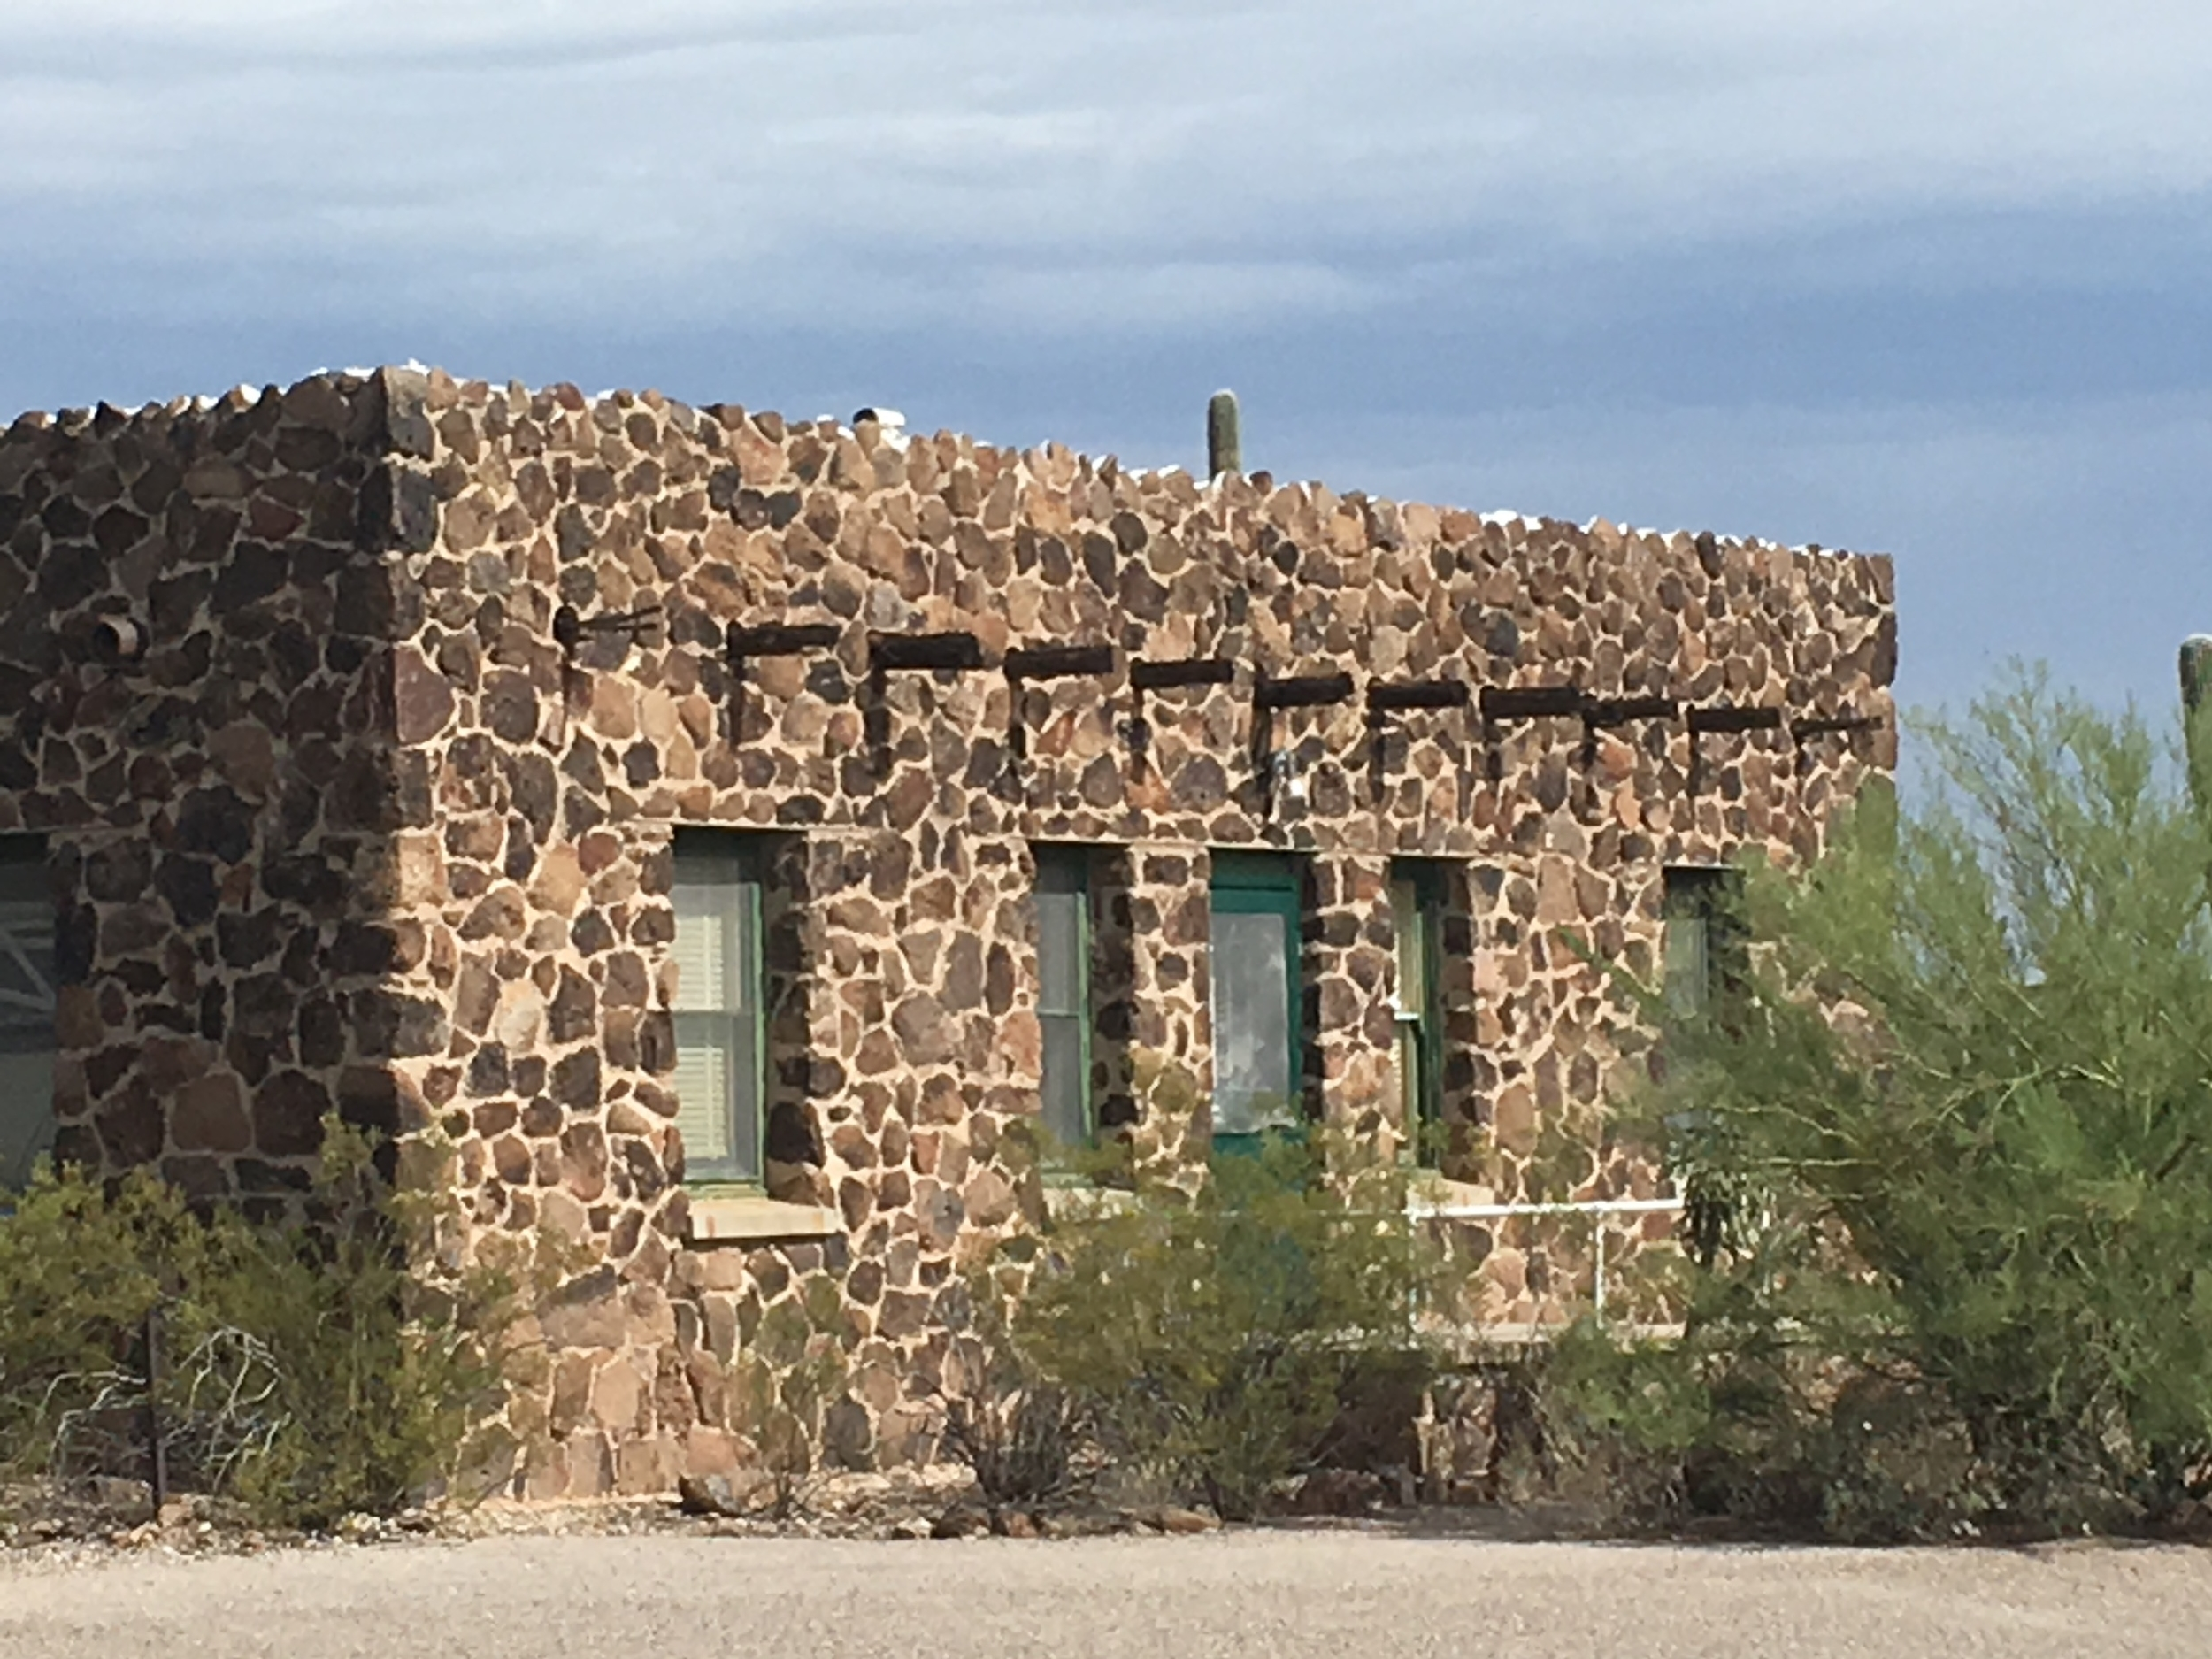 There are several stone buildings on Tumamoc Hill. The Arizona Geological Survey says the geology of Tumamoc and Sentinel Peak is dominated by 20- to 30-million-year old rock.